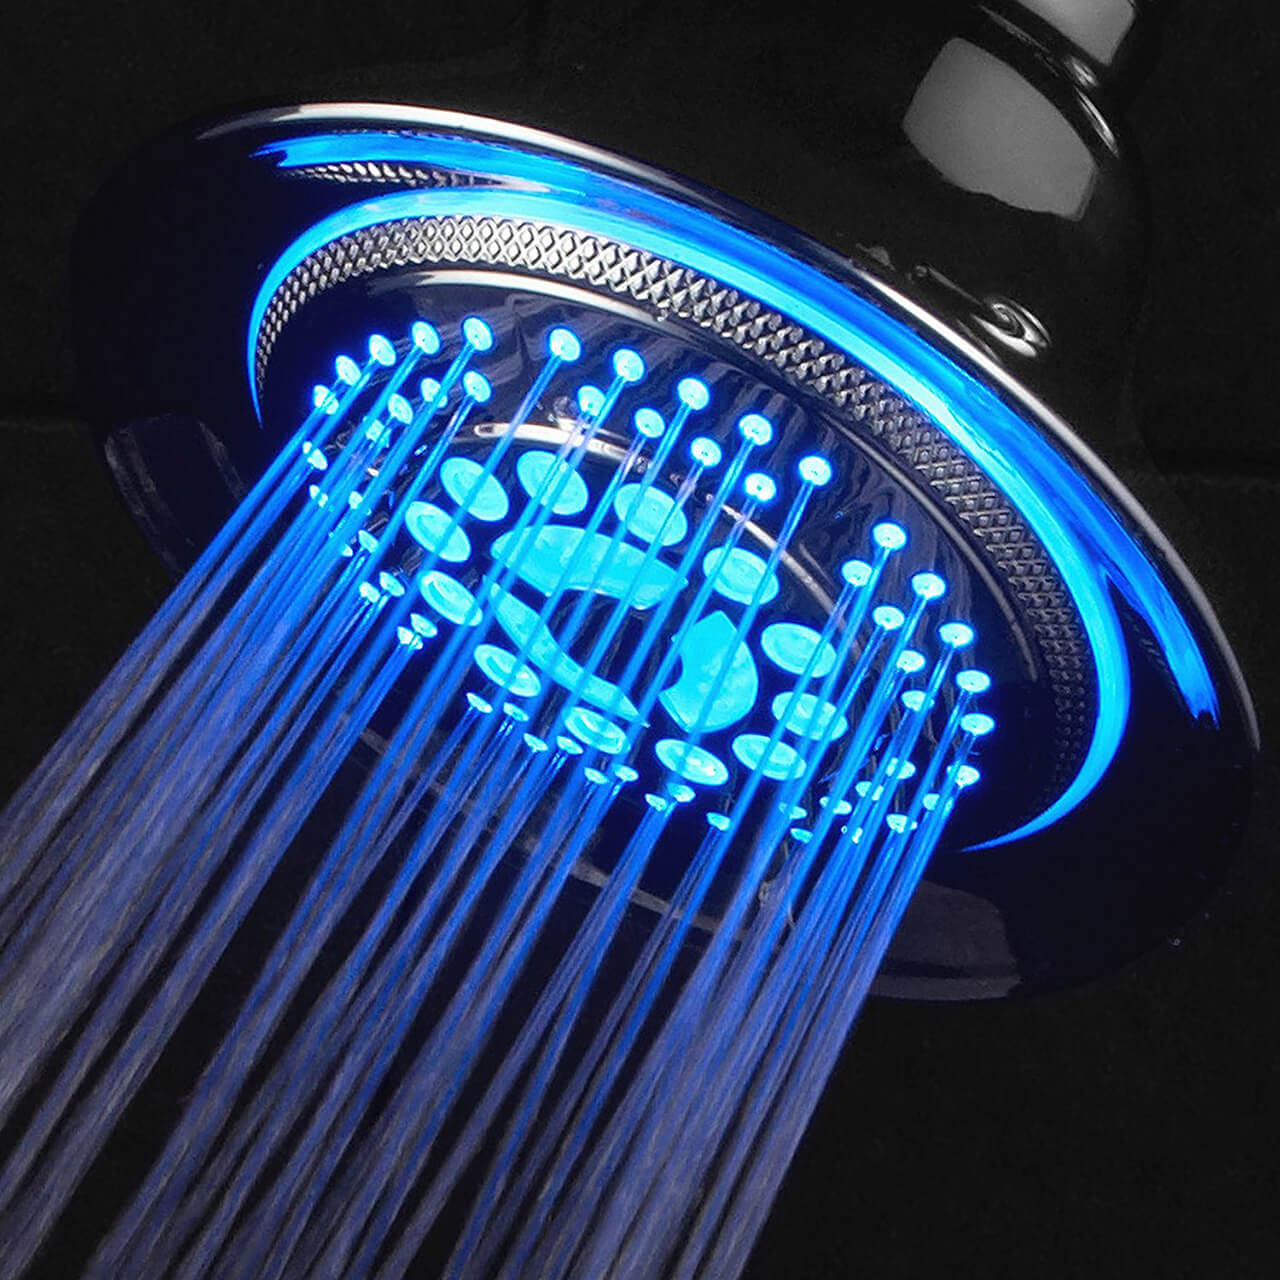 DreamSpa Fixed-mount Shower Head With 5 Water Settings